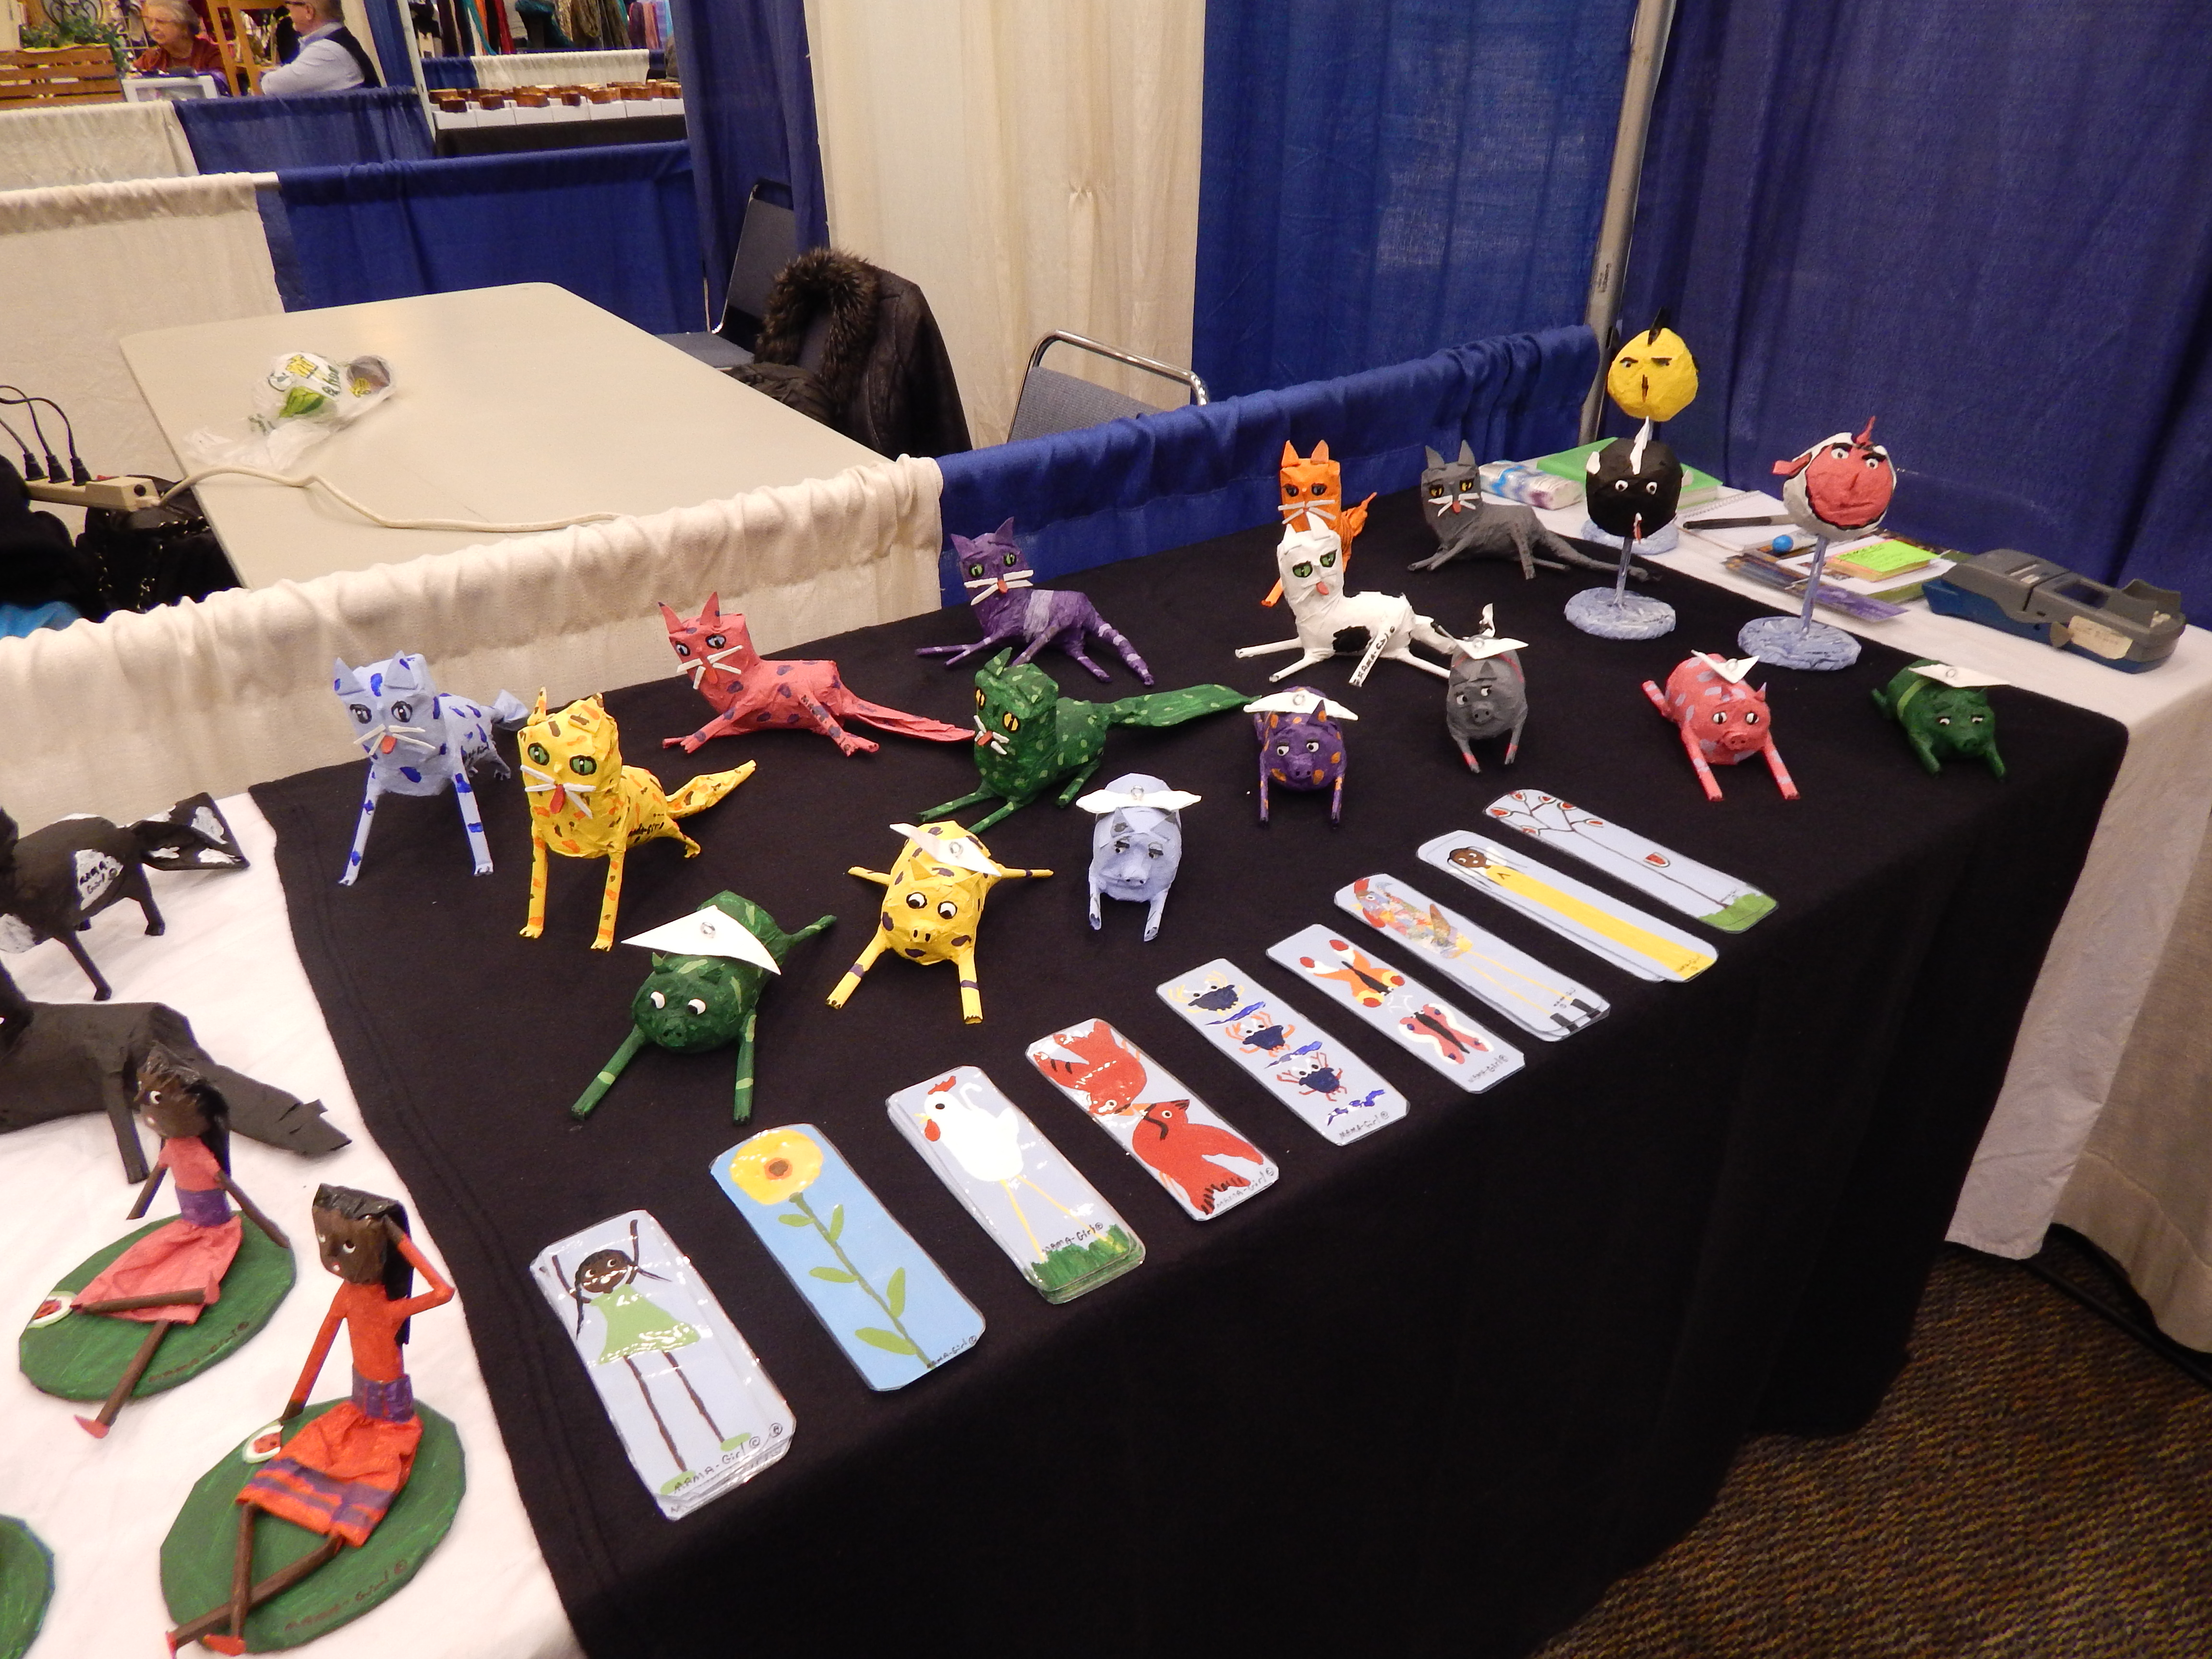 Nautical wildlife art festival and craft show in ocean for Michaels arts and crafts virginia beach